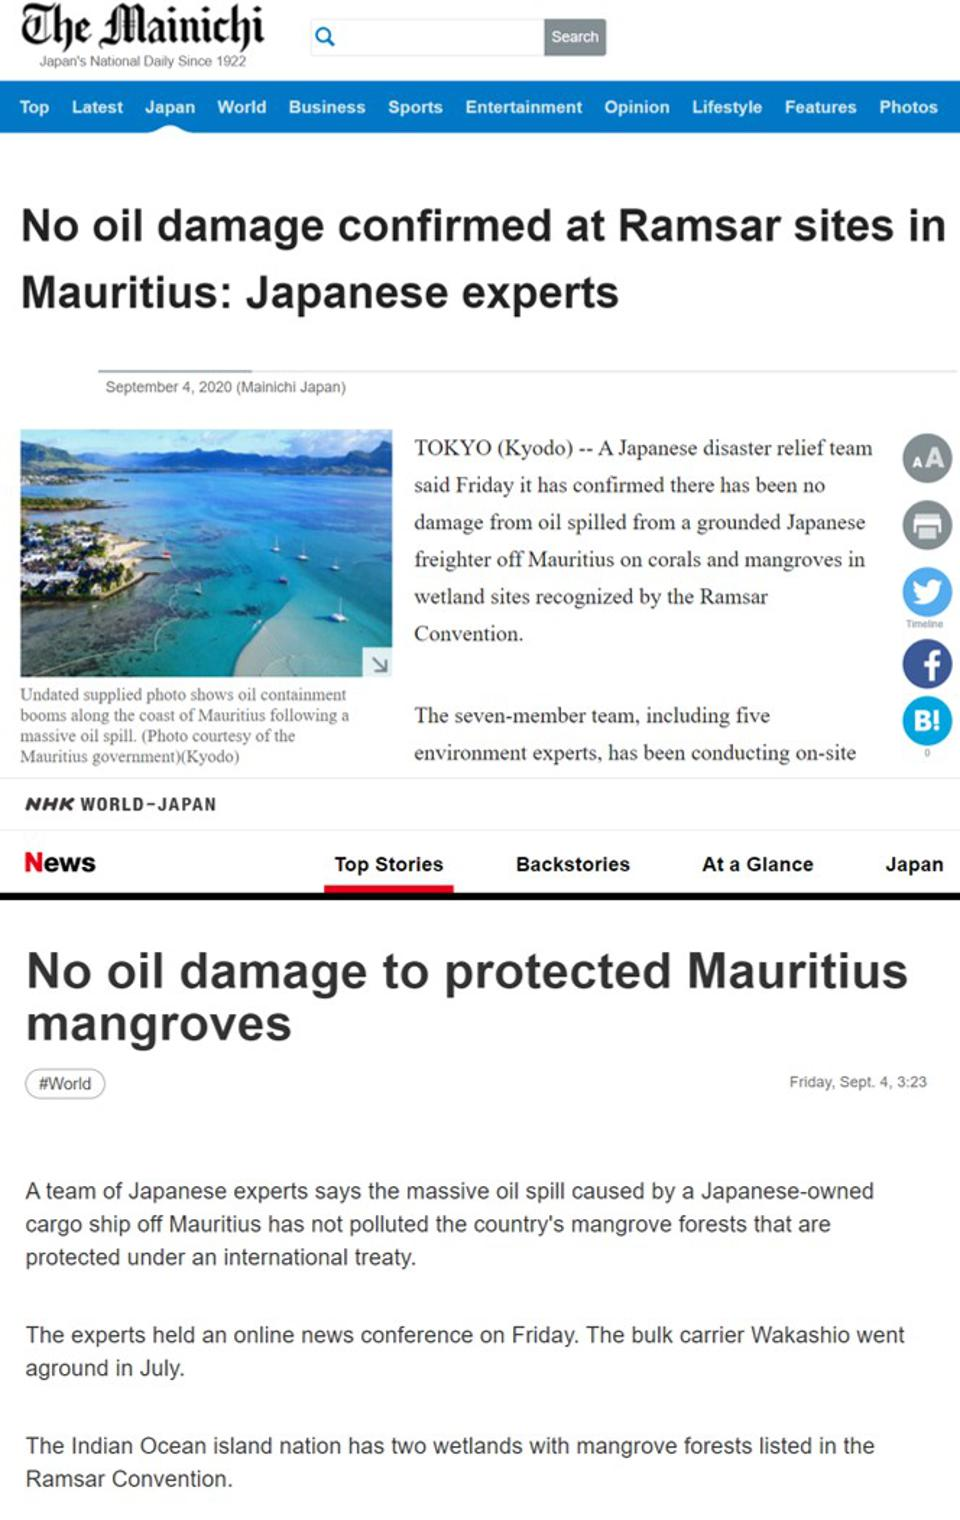 4 Sep 2020: Japan's media, including state backed-NHK World are reporting that there are no oil damage to mangroves in Mauritius, based on Japan's in-country teams.